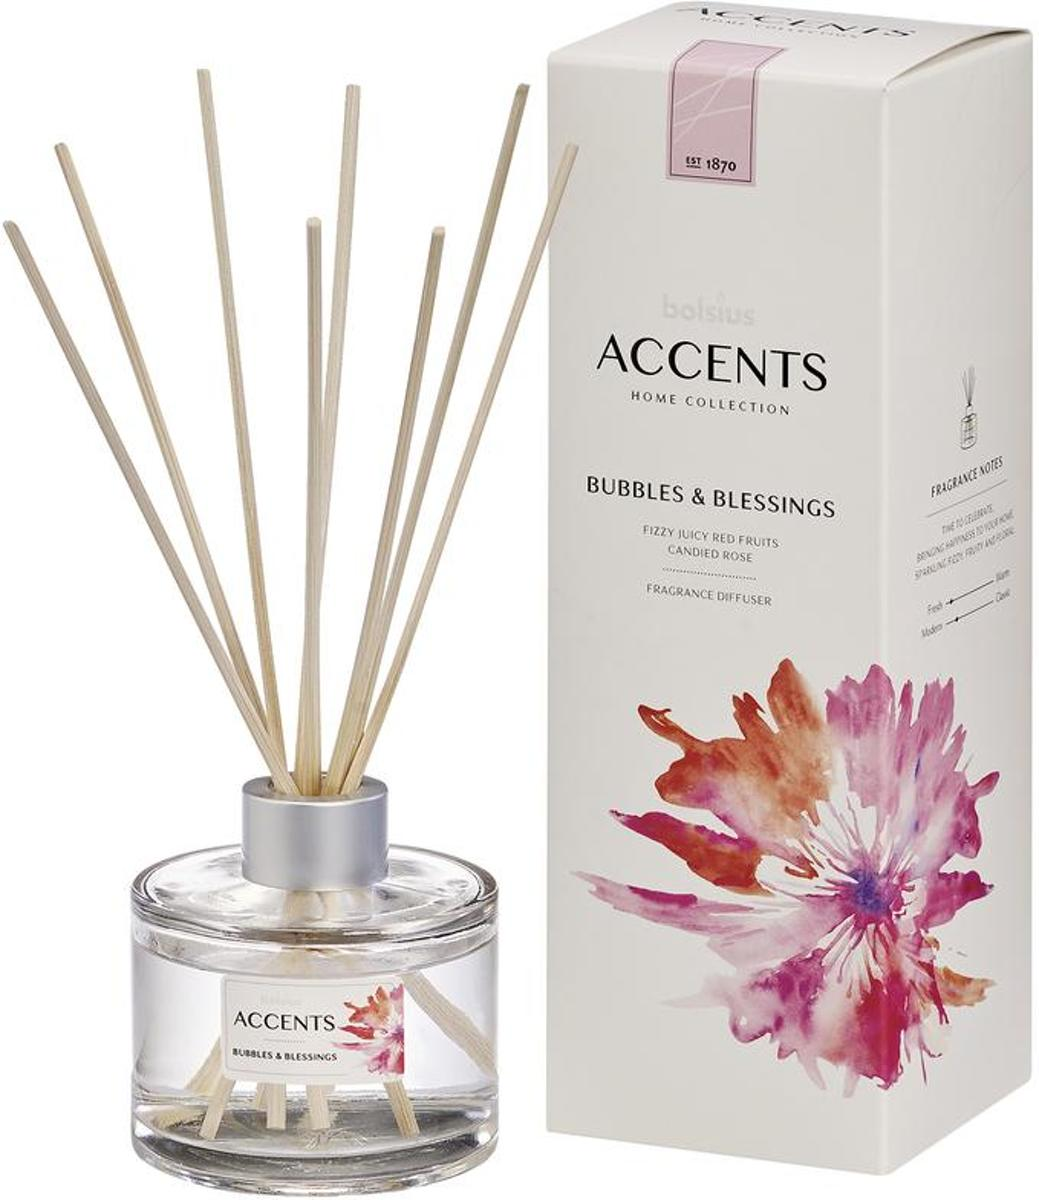 Bolsius Accents diffuser bubbles & blessings